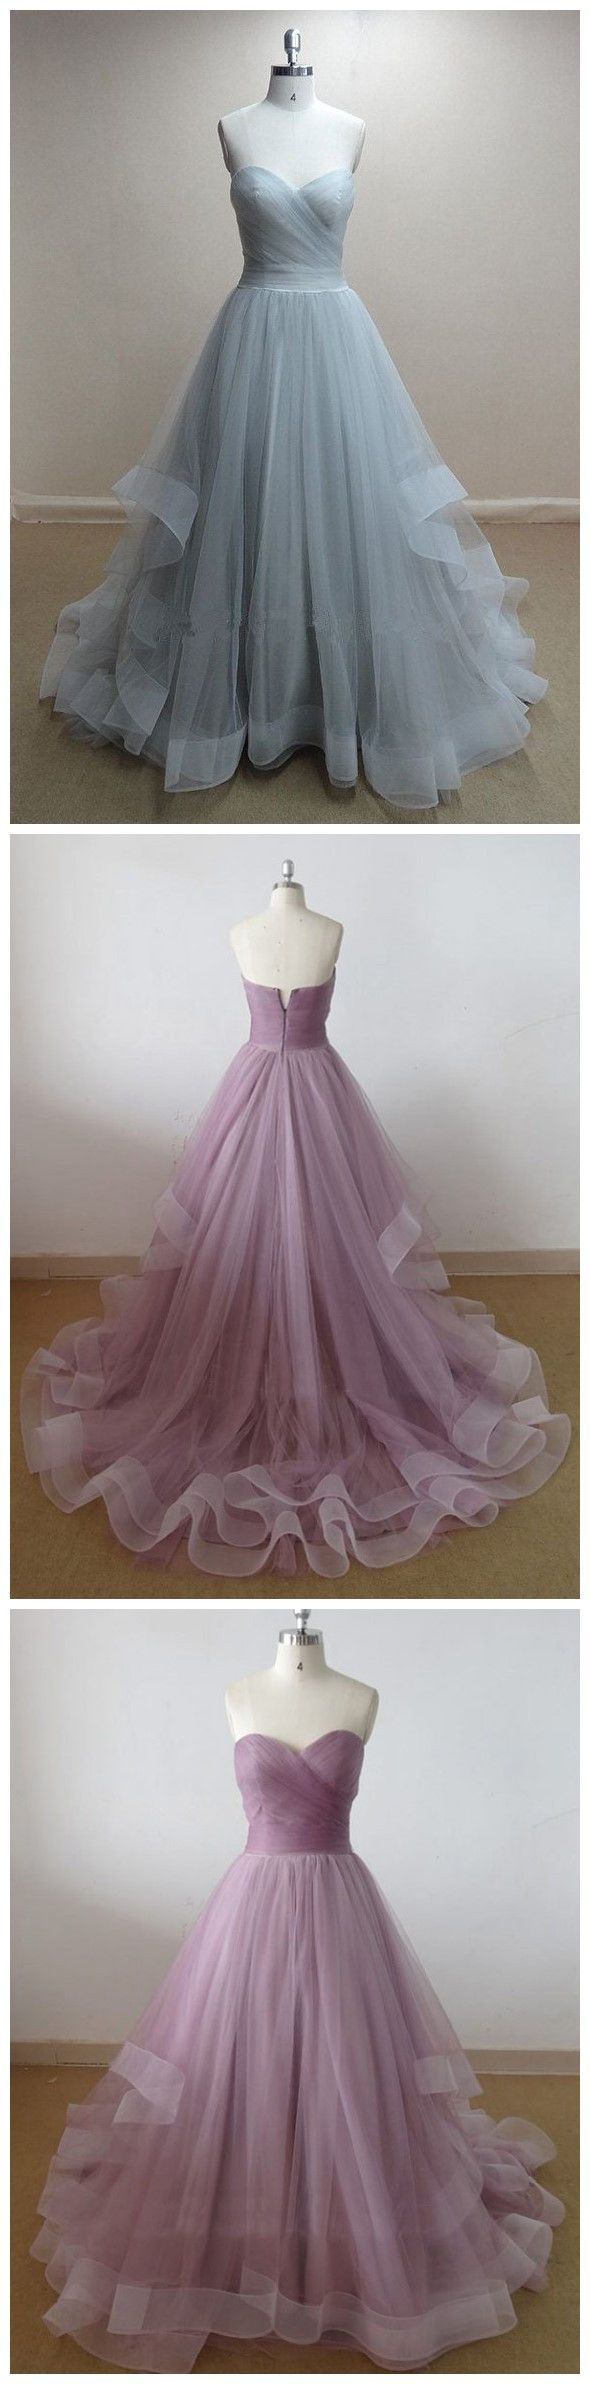 nice Simple Elegant A-line Sweetheart Ruched Tulle Long Prom Dress/Party Dress TUPD-3...